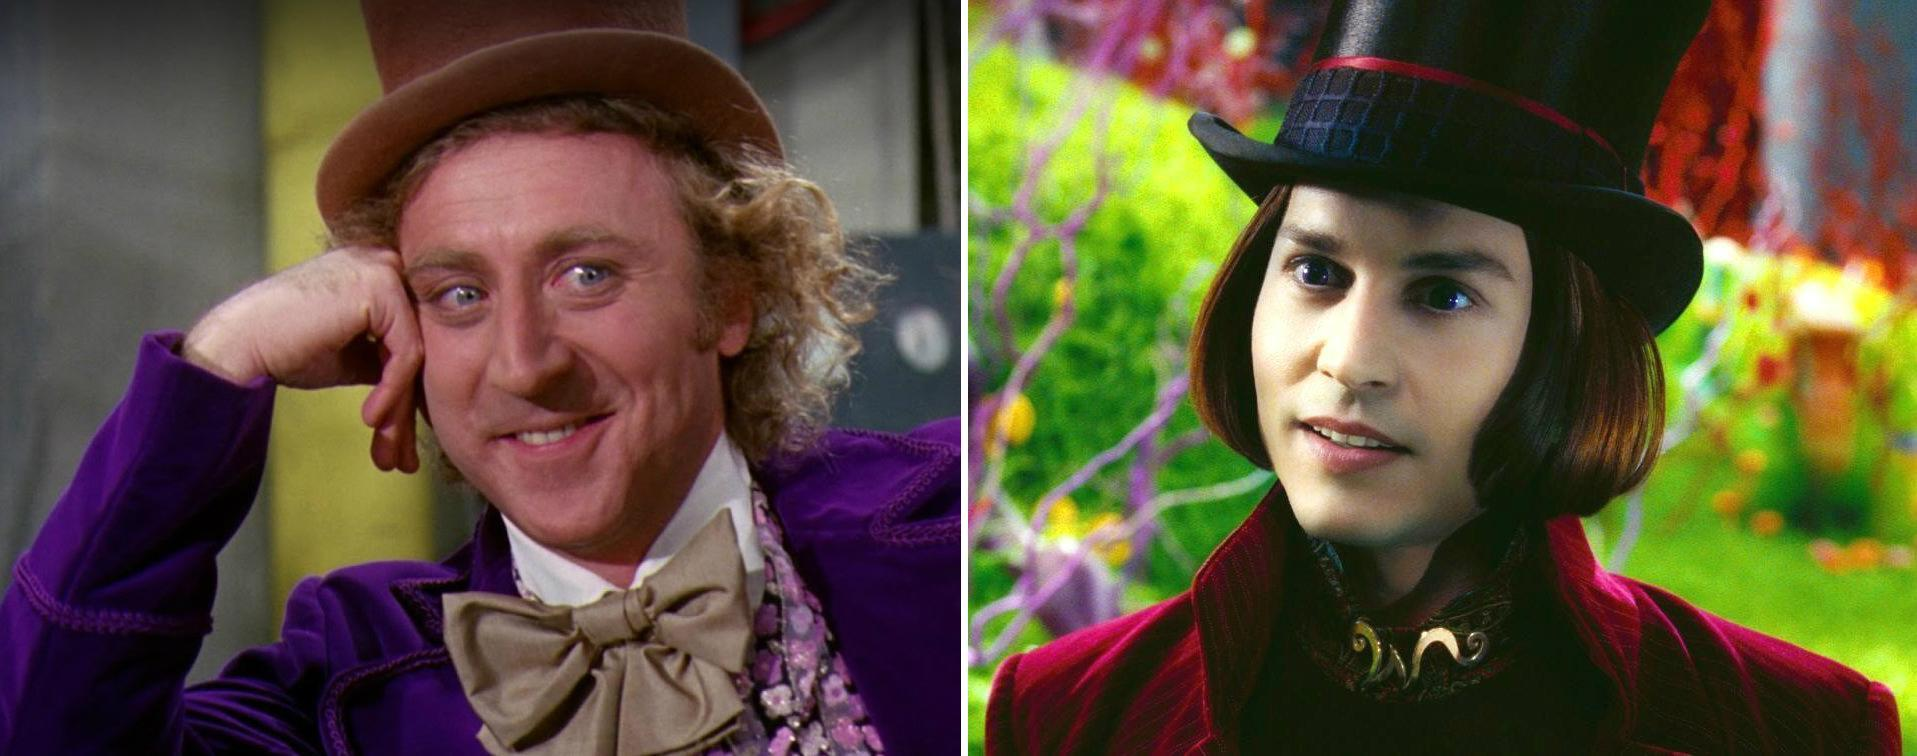 johnny depp gene wilder in Late gene wilder believed johnny depp's charlie and the chocolate factory was 'an insult' : cadbury's owner abandons hershey takeover the owner of cadbury's.